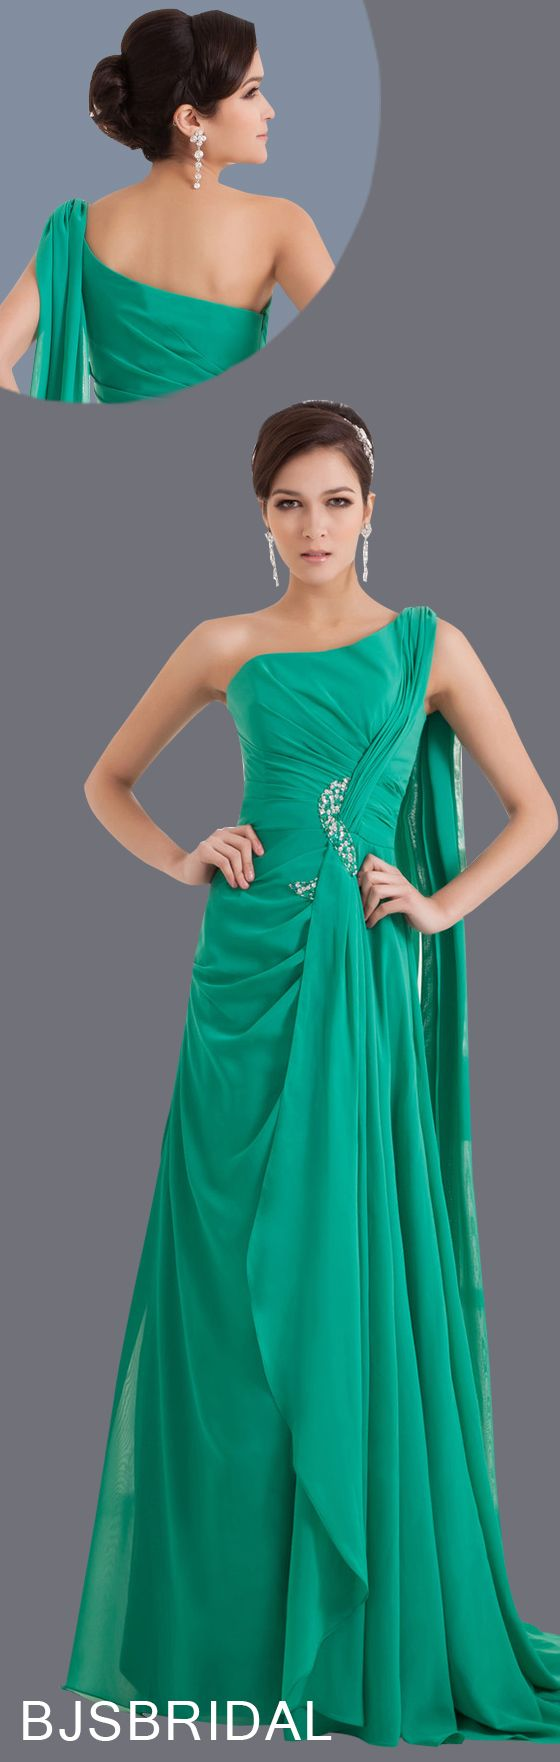 Inexpensive Party Dress Affordable Modern Church Natural Court Train ...